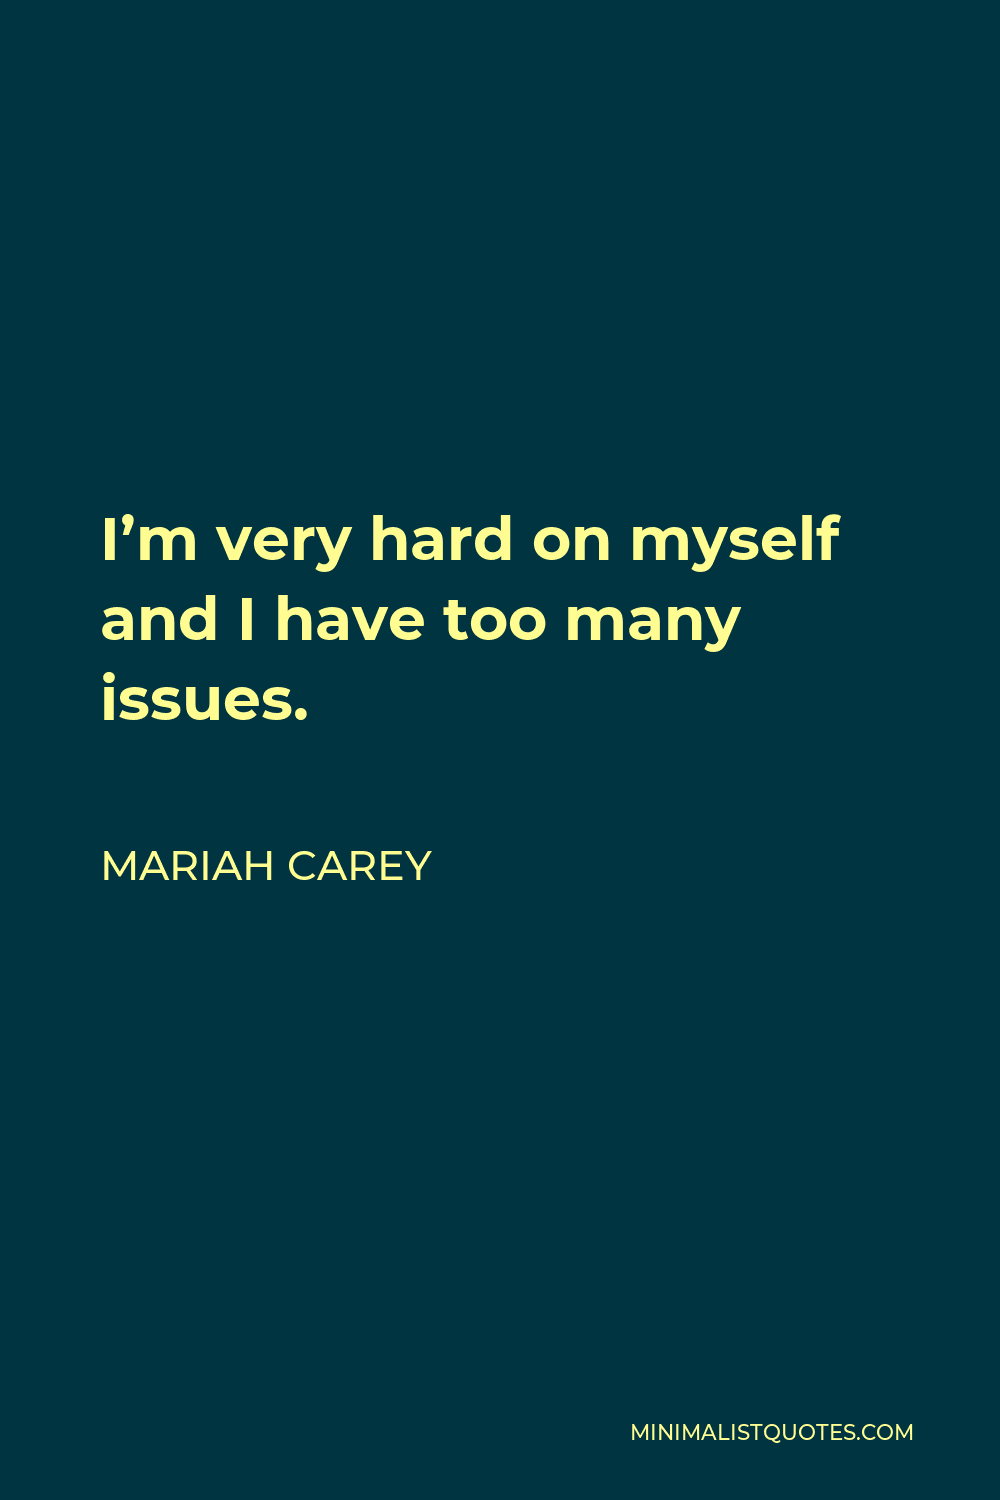 Mariah Carey Quote - I'm very hard on myself and I have too many issues.